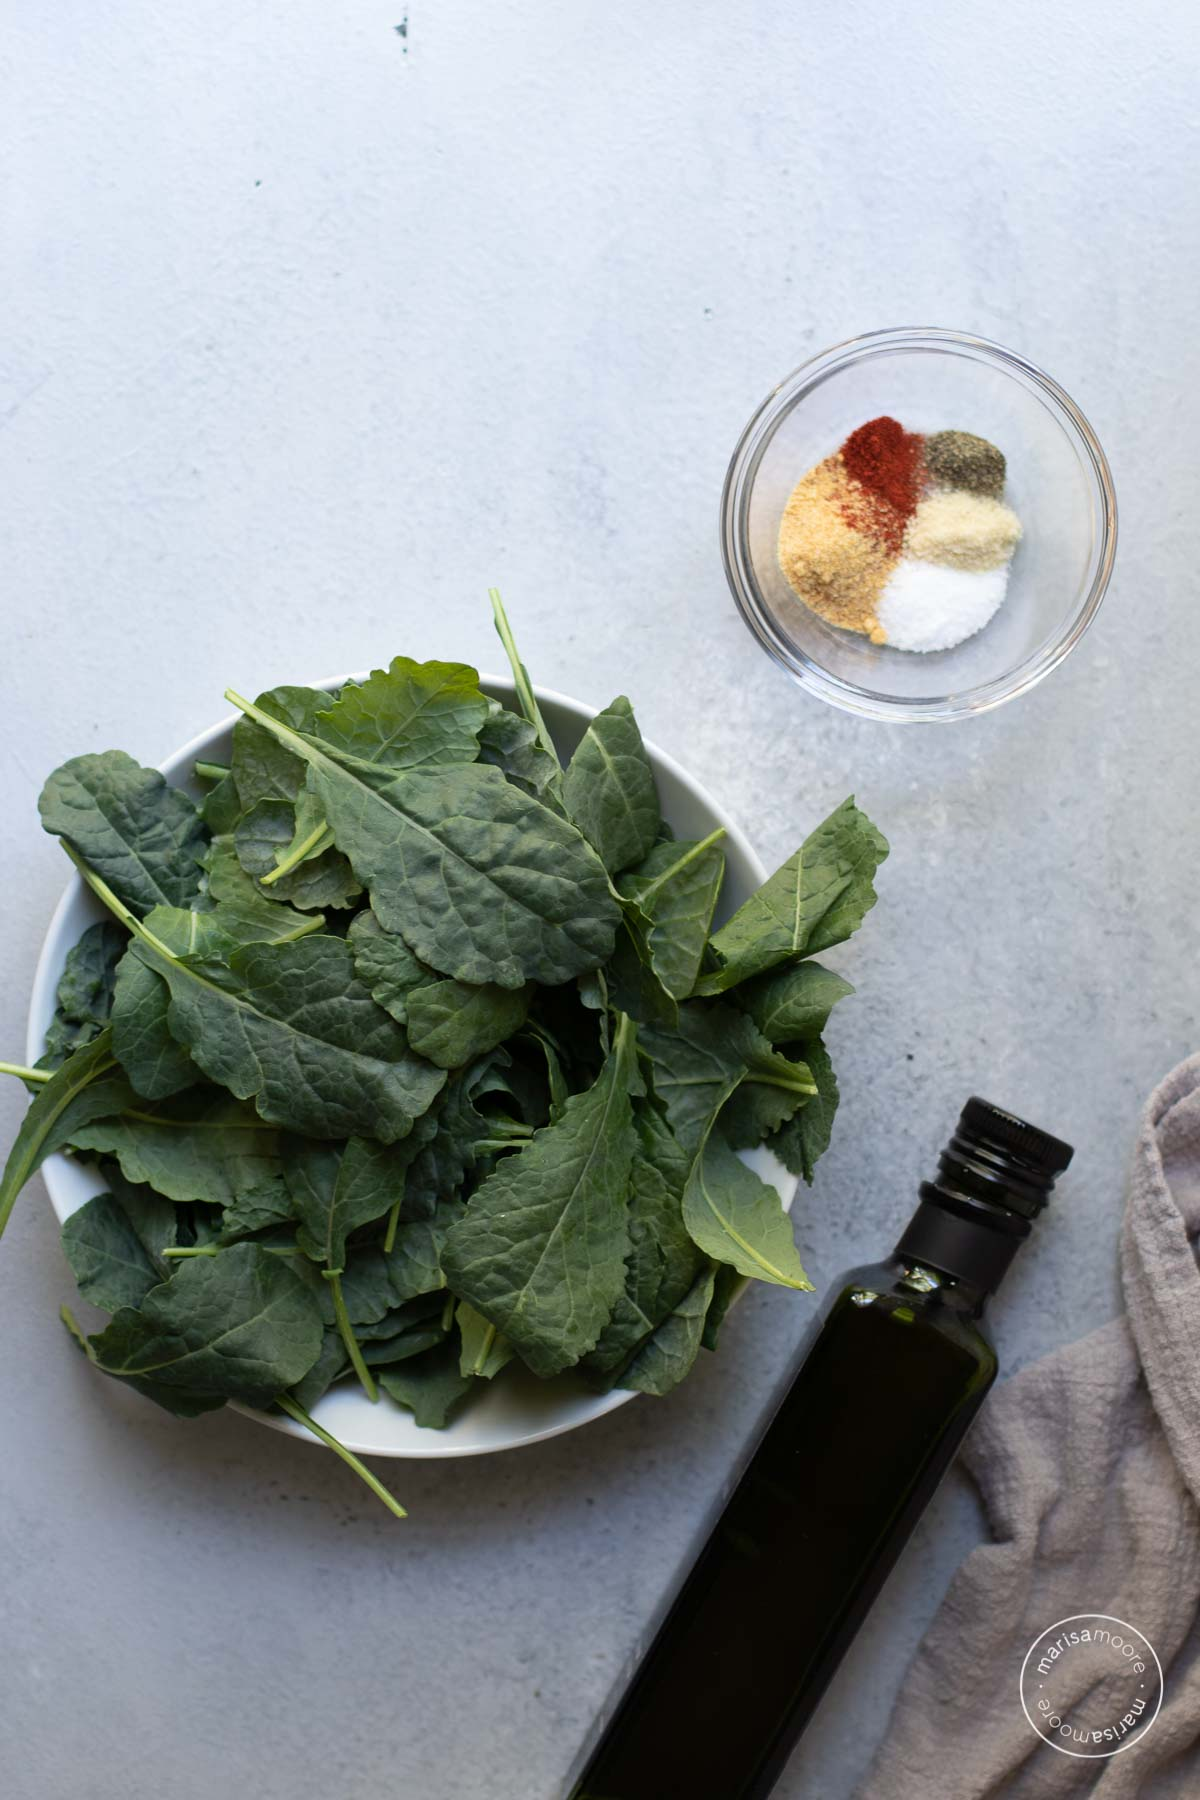 Ingredients on a gray background. Includes kale in a white bowl, spices in a clear bowl and a bottle of olive oil.